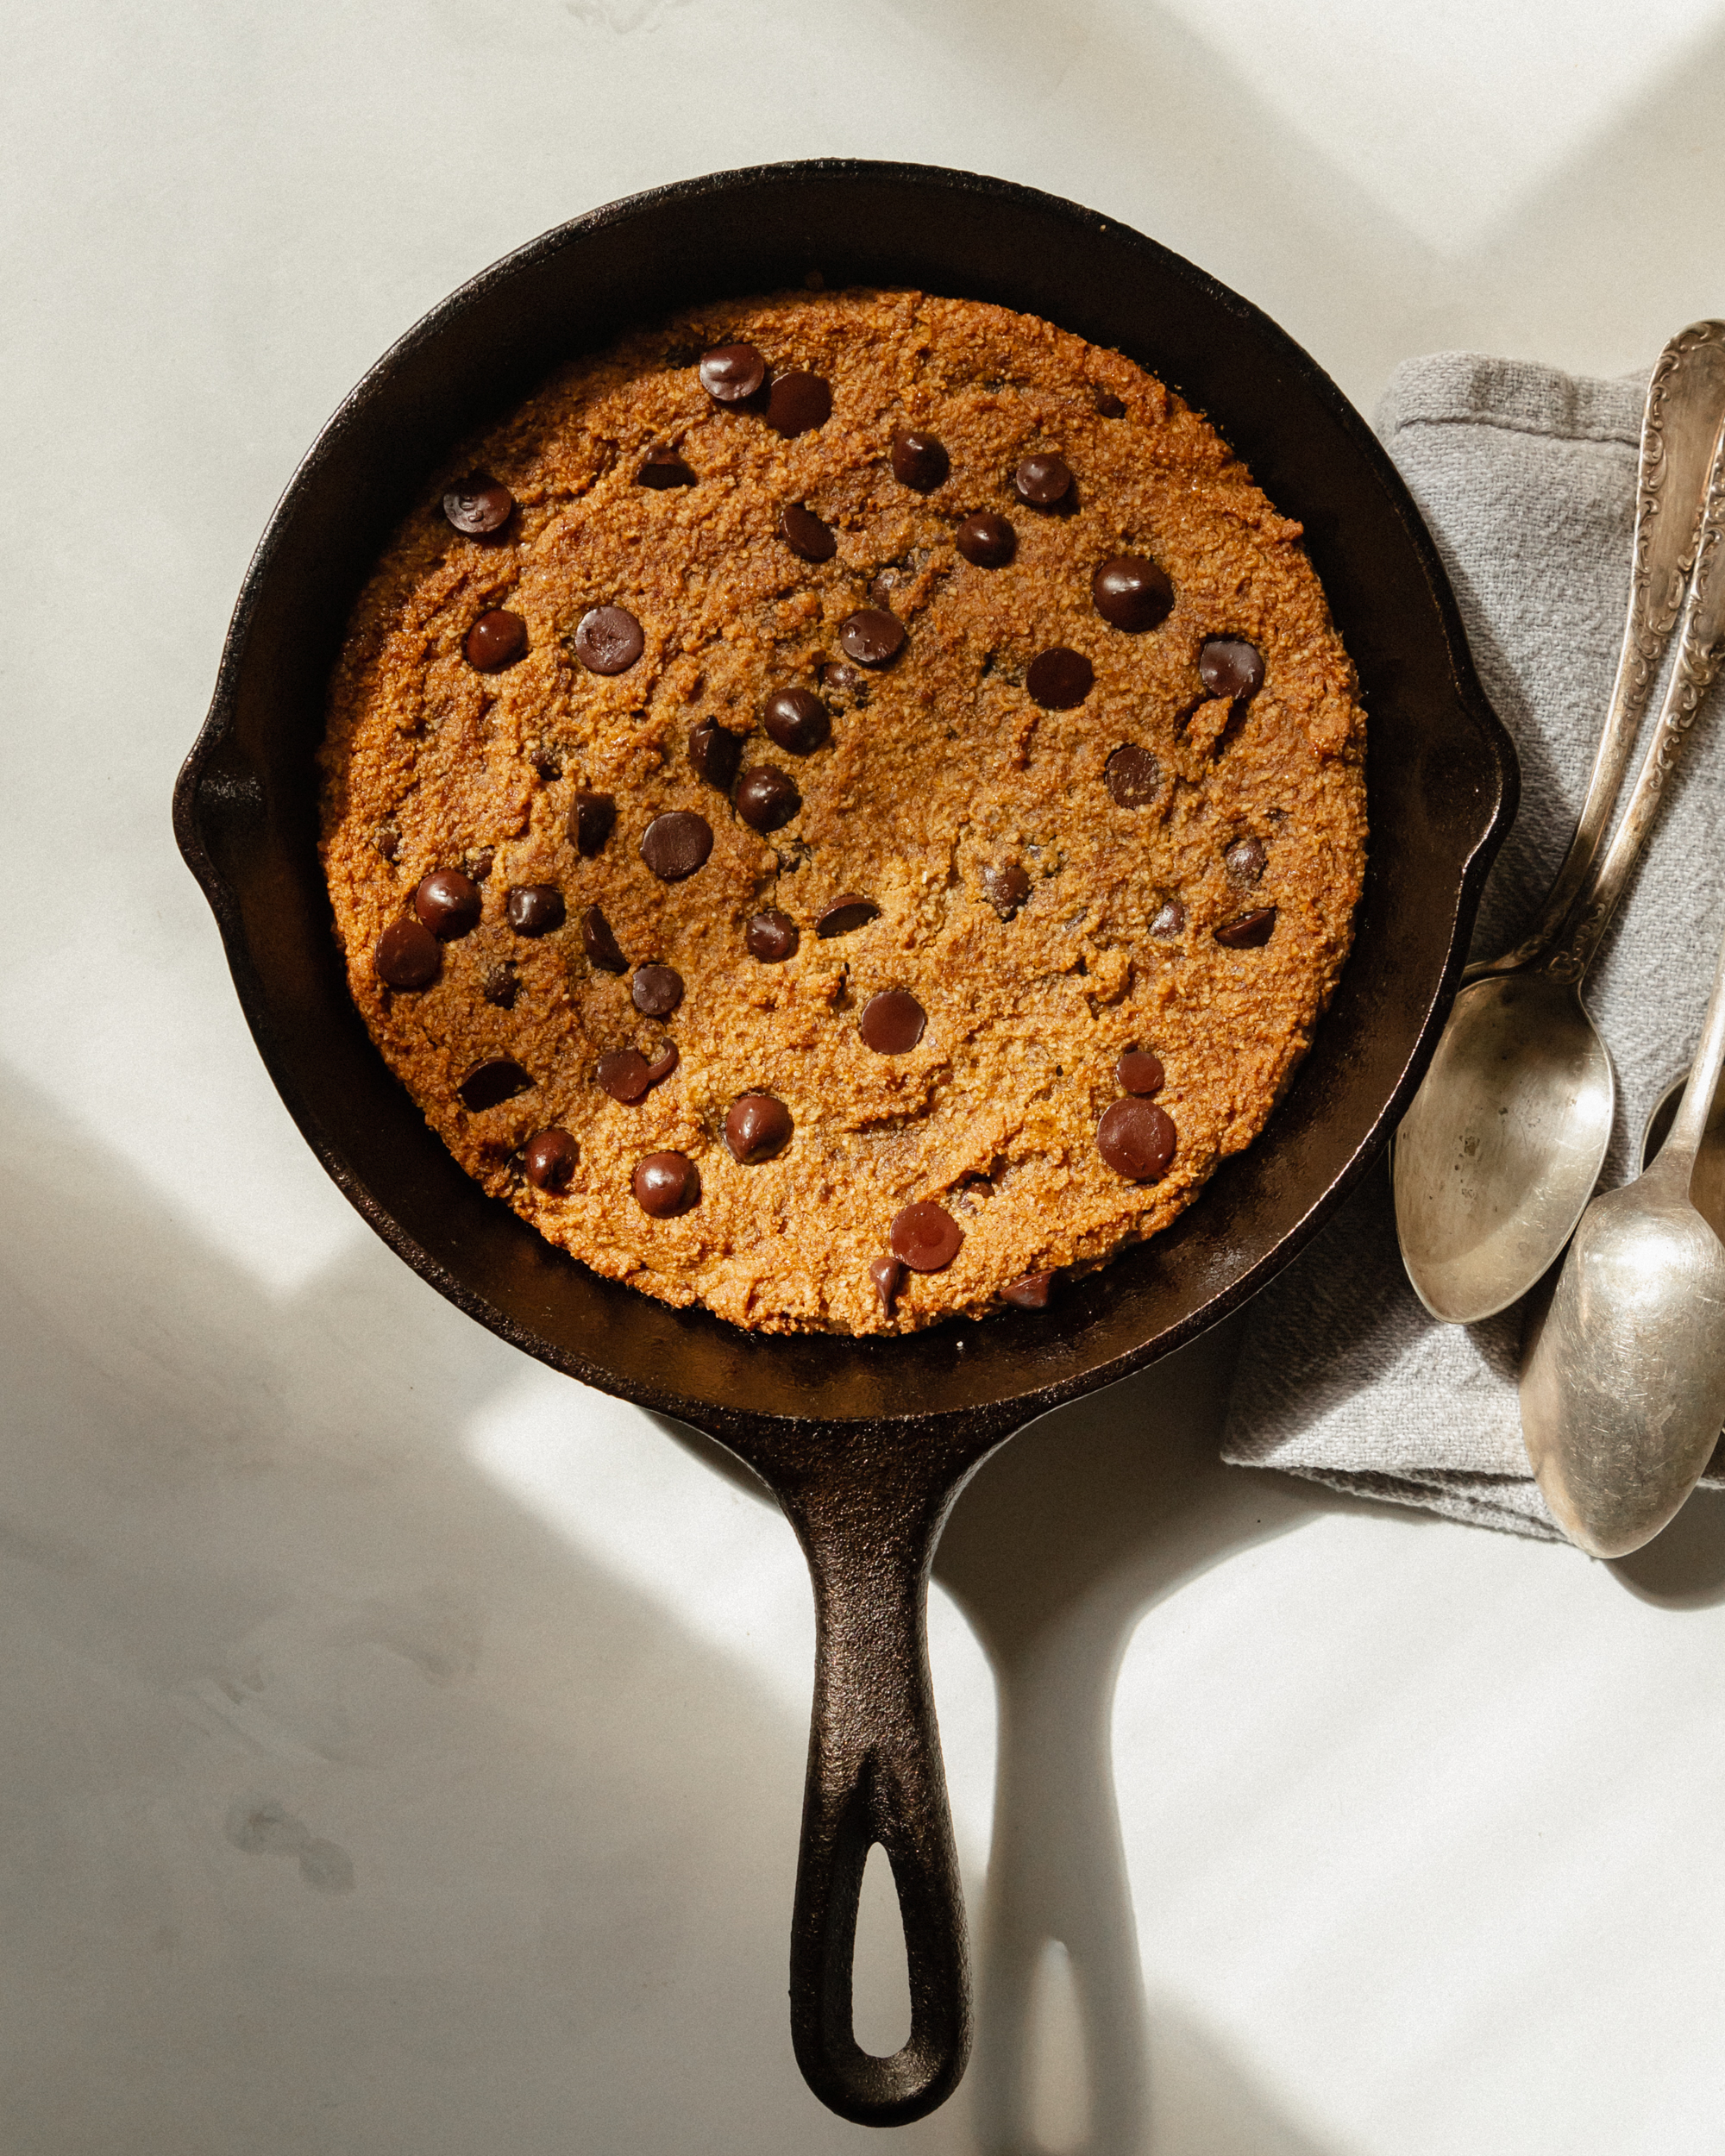 An overhead shot of a large cookie that has been baked in a skillet. There is a grey napkin with a few spoons on top nearby.